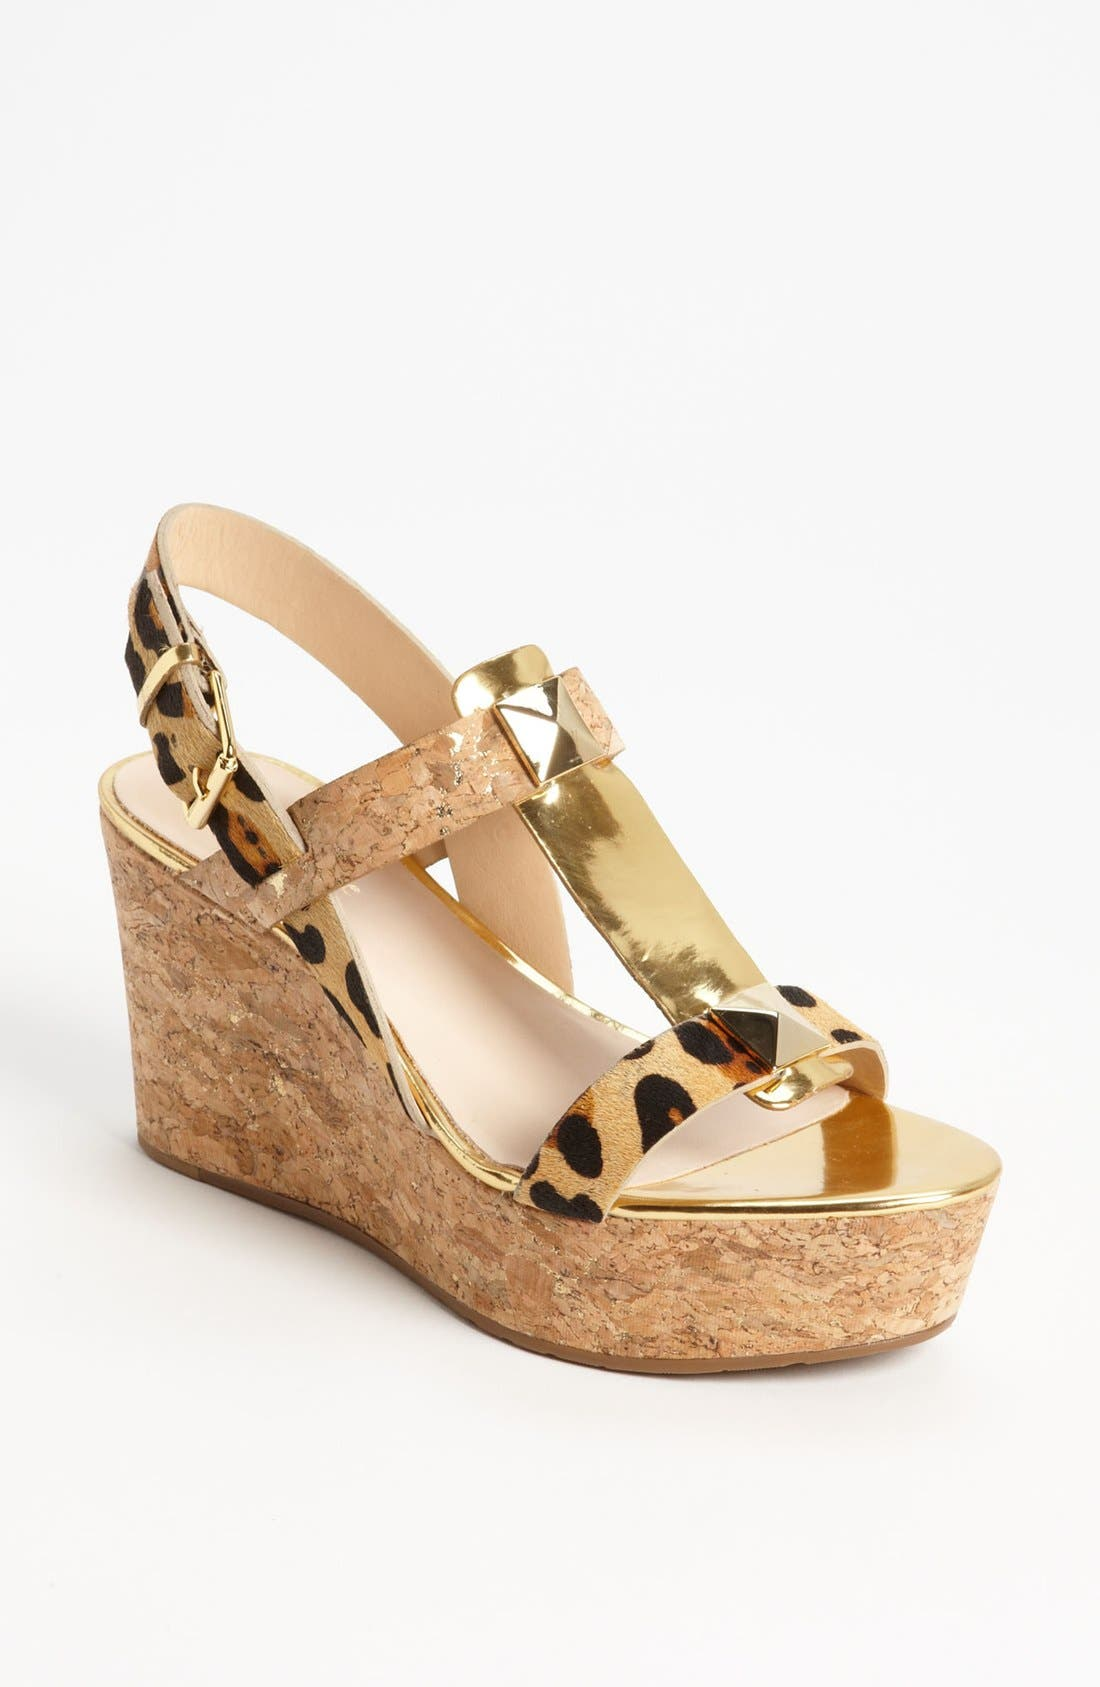 Main Image - kate spade new york 'tegan' sandal